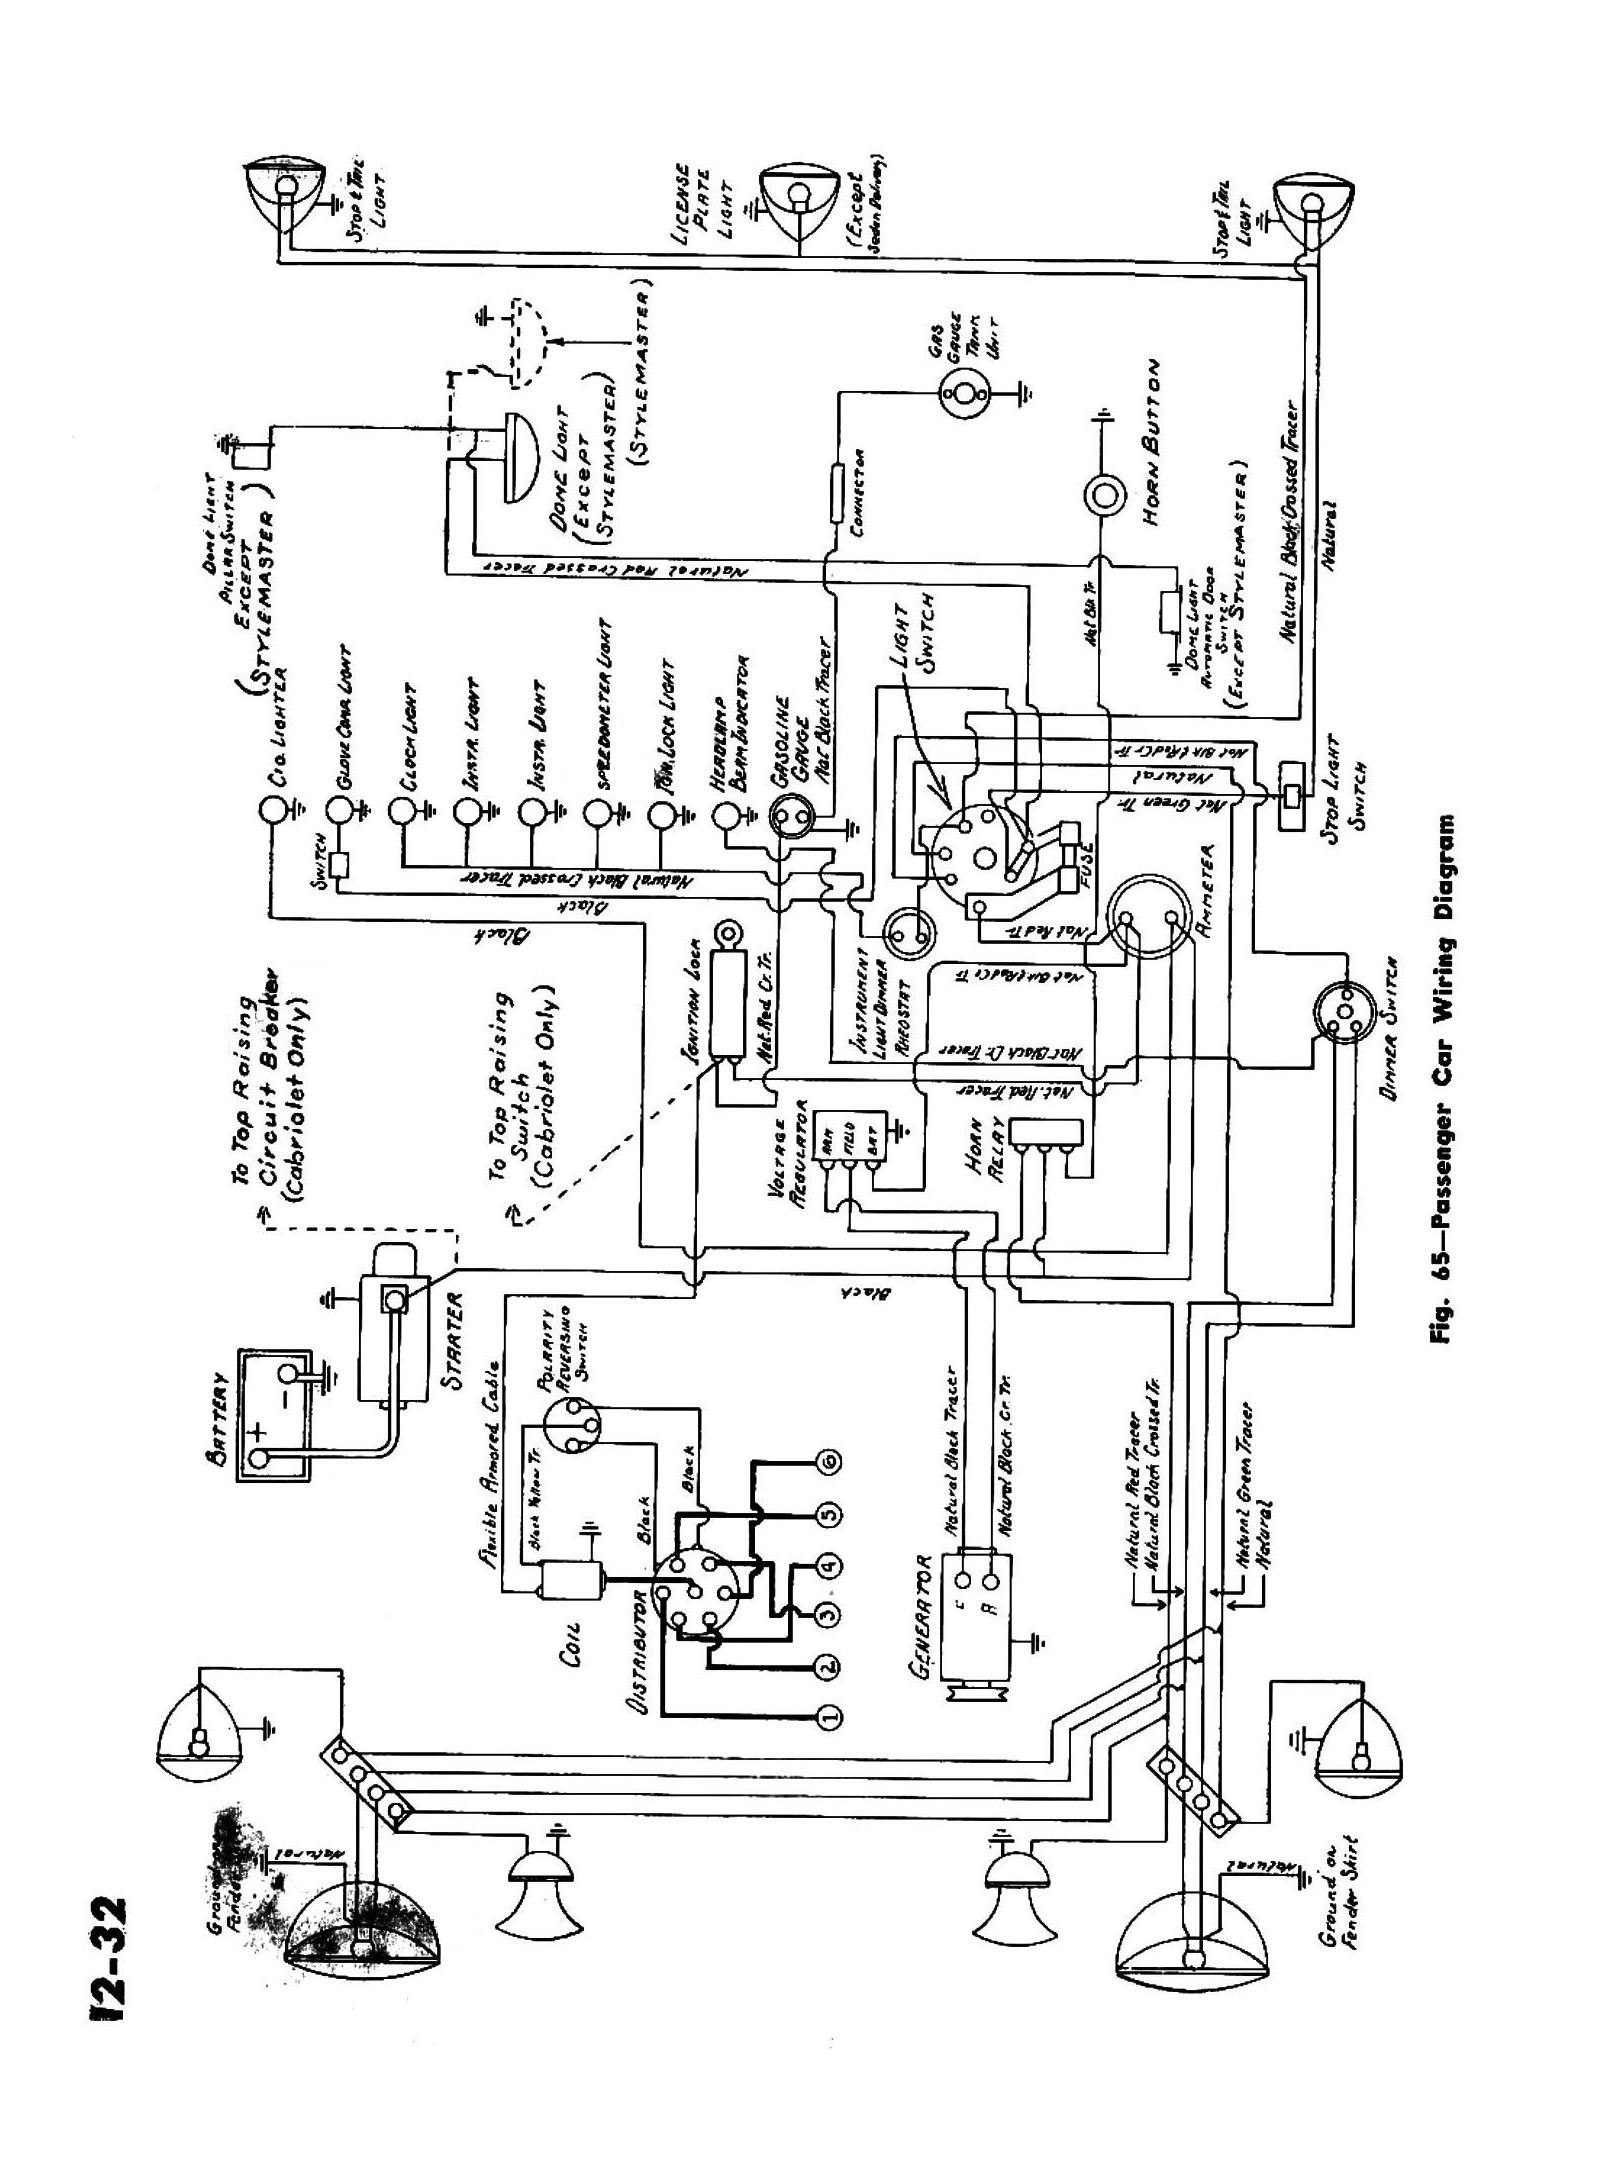 45car chevy wiring diagrams find wiring diagram for 87 ford f 150 at bayanpartner.co